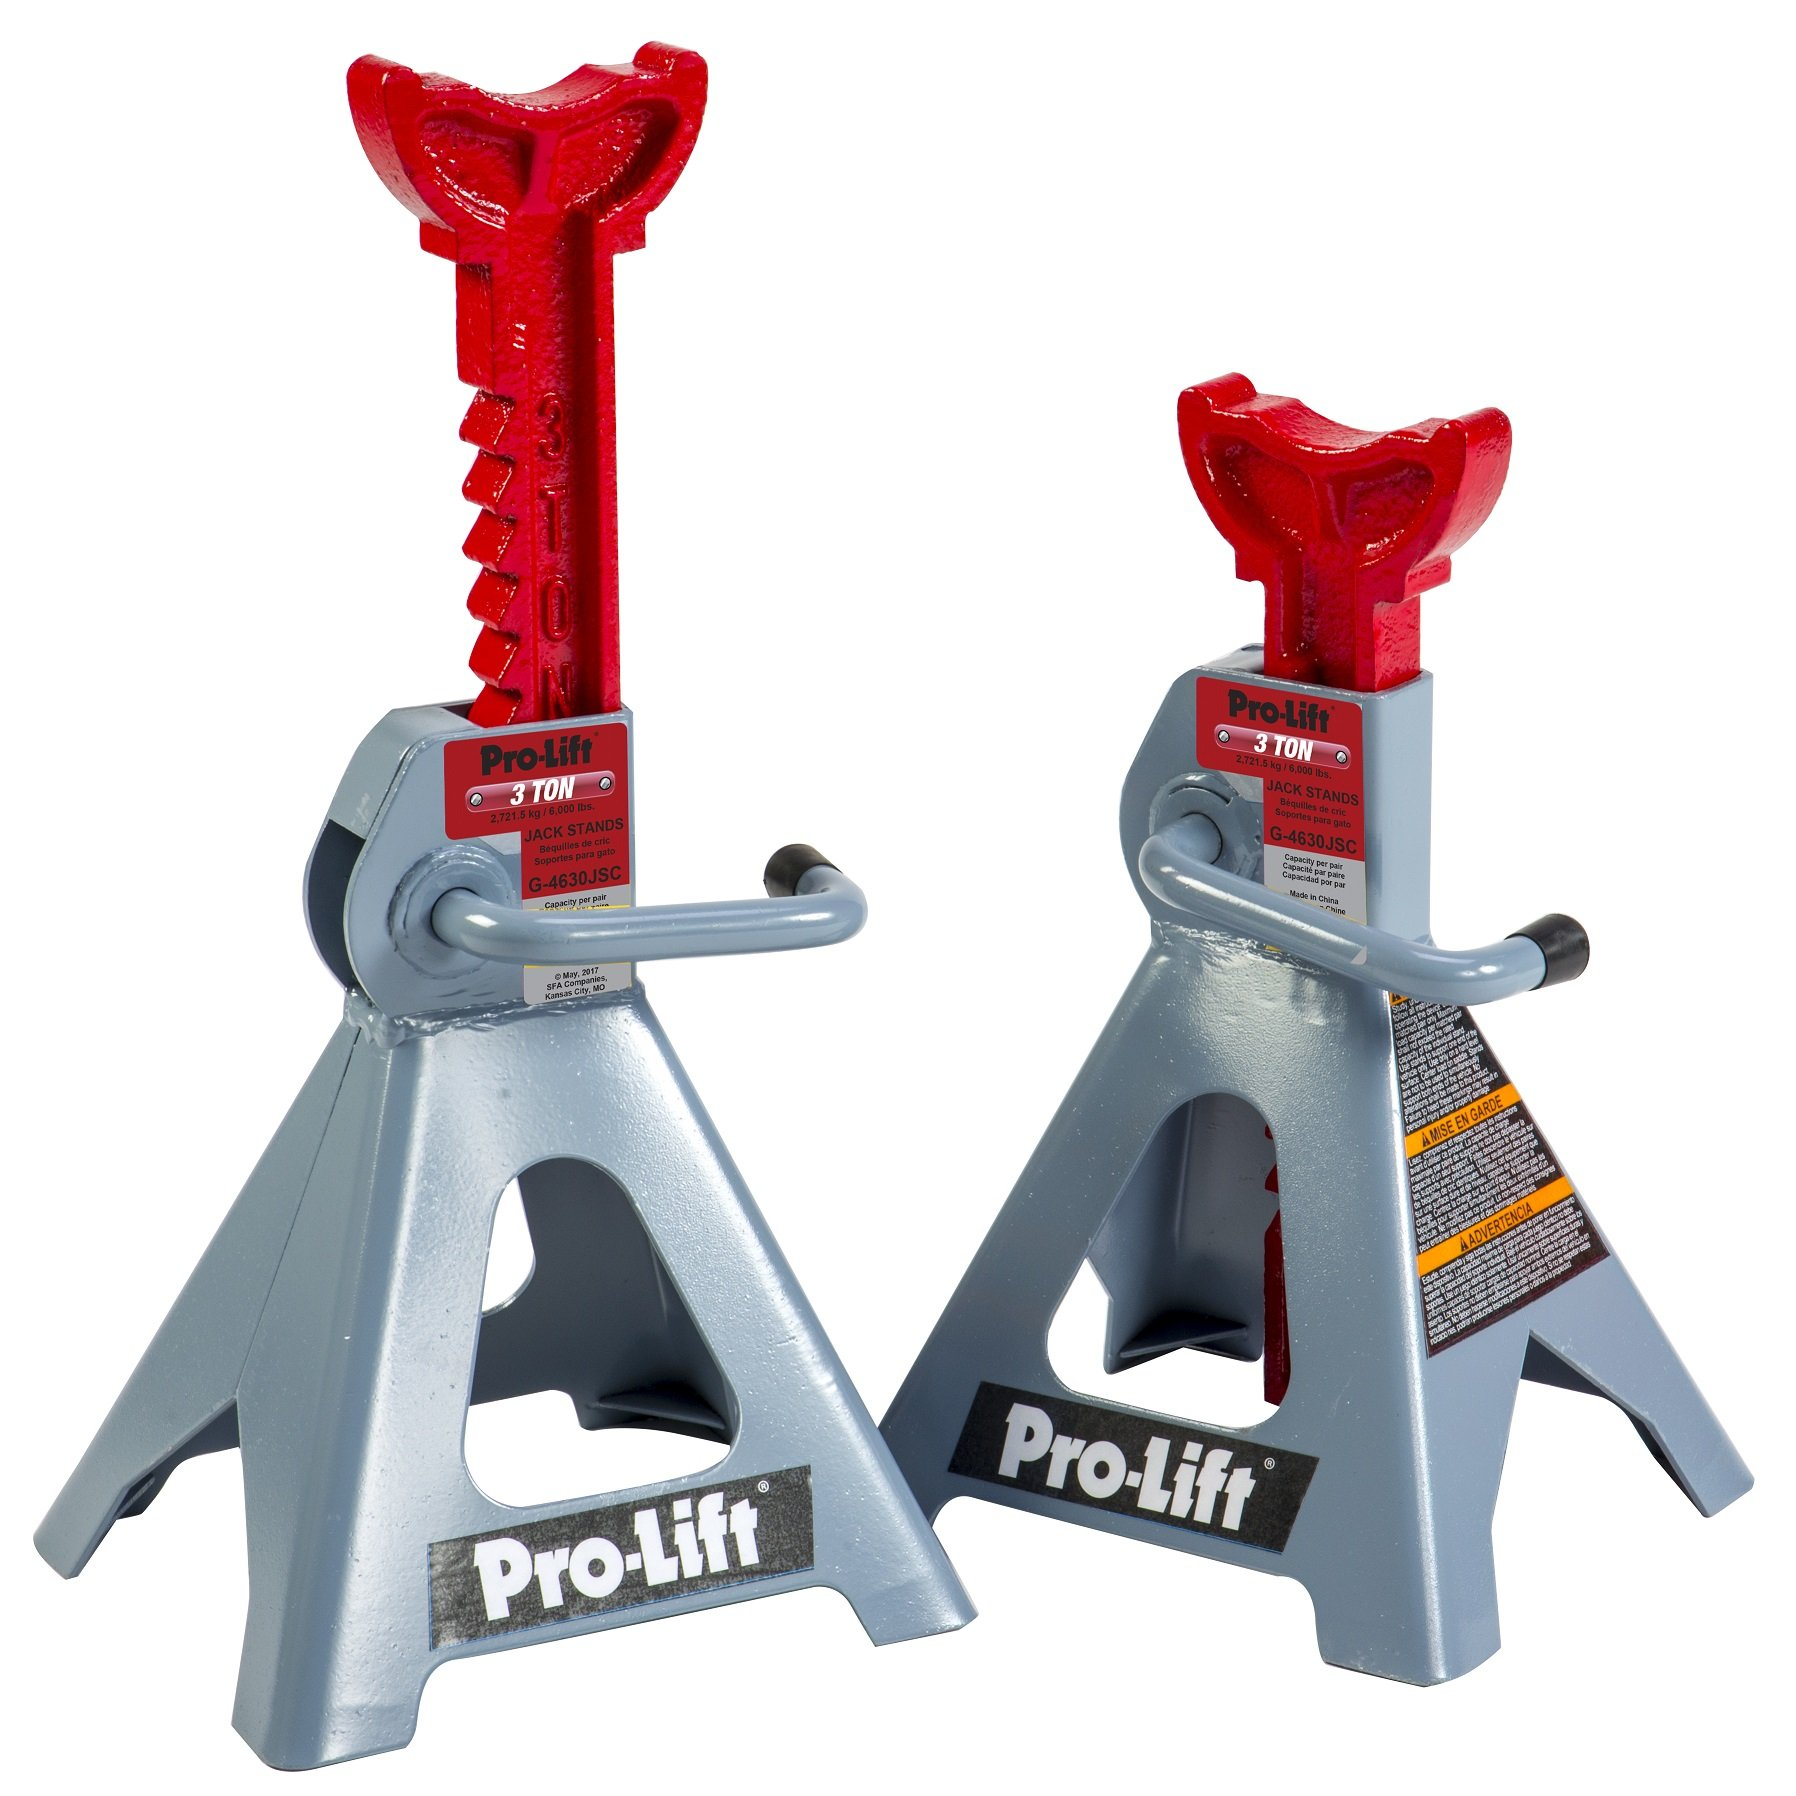 Pro Lift G-4630JSC 3 Ton Heavy Duty Floor Jack / Jack Stands and Creeper Combo - Great for Service Garage Home Uses by Pro-LifT (Image #3)